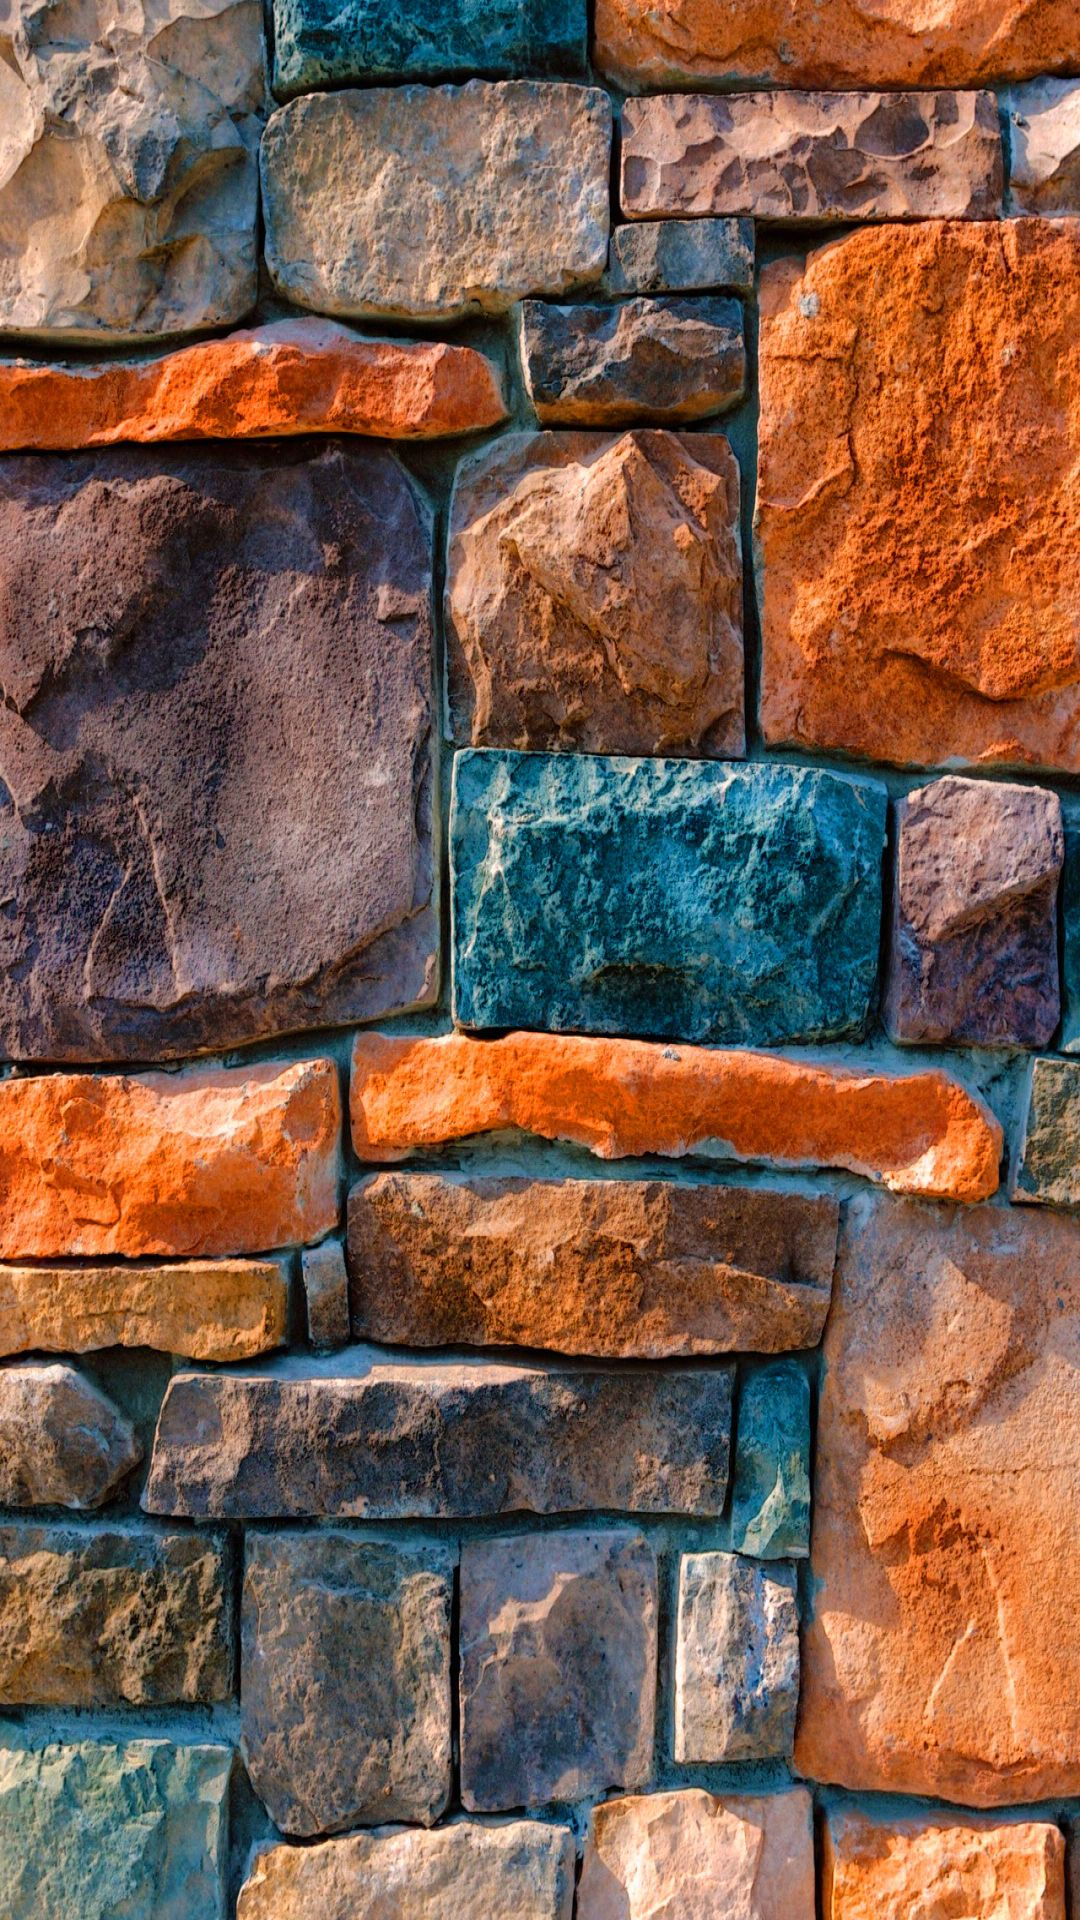 Colored Stone Background Iphone Wallpaper Images Nature Iphone Wallpaper Desktop Background Pictures